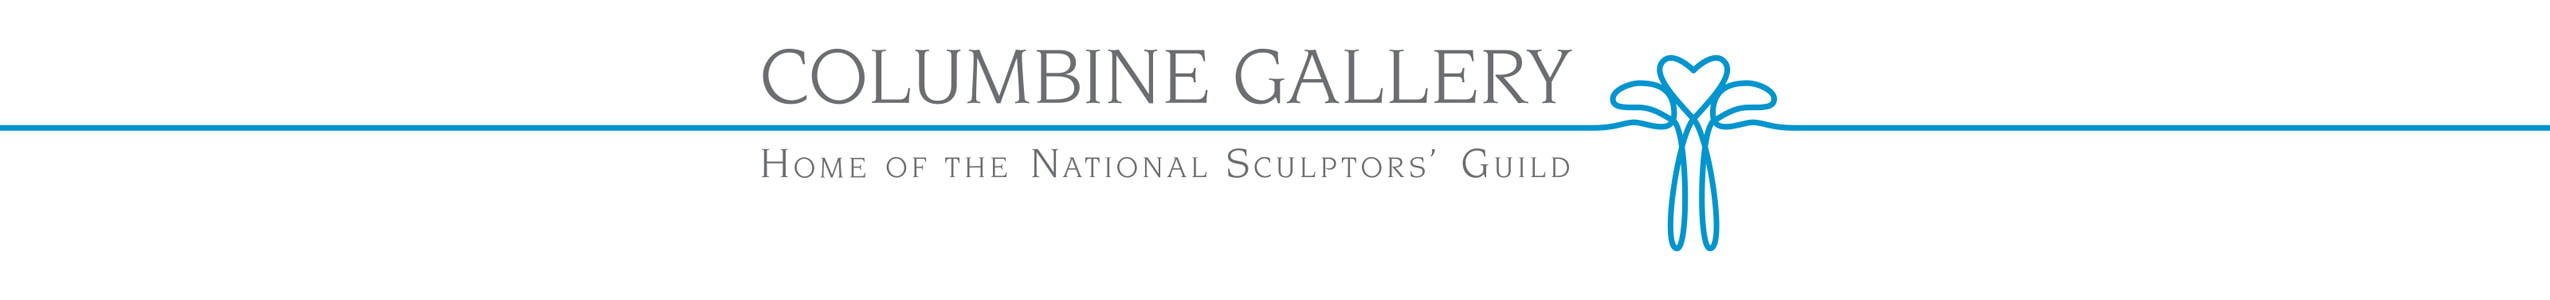 Columbine Gallery home of the National Sculptors' Guild Specializing in Significant Public Art since 1992. Columbine is the Colorado State flower and symbol for Spirit. Our Loveland location of Columbine Art Gallery and the National Sculptors' Guild has quickly become the largest original fine art source in Colorado located across the street from Sculpture in the Park events at Benson Park, we feature artwork by 50 represented artists year round, ship worldwide.